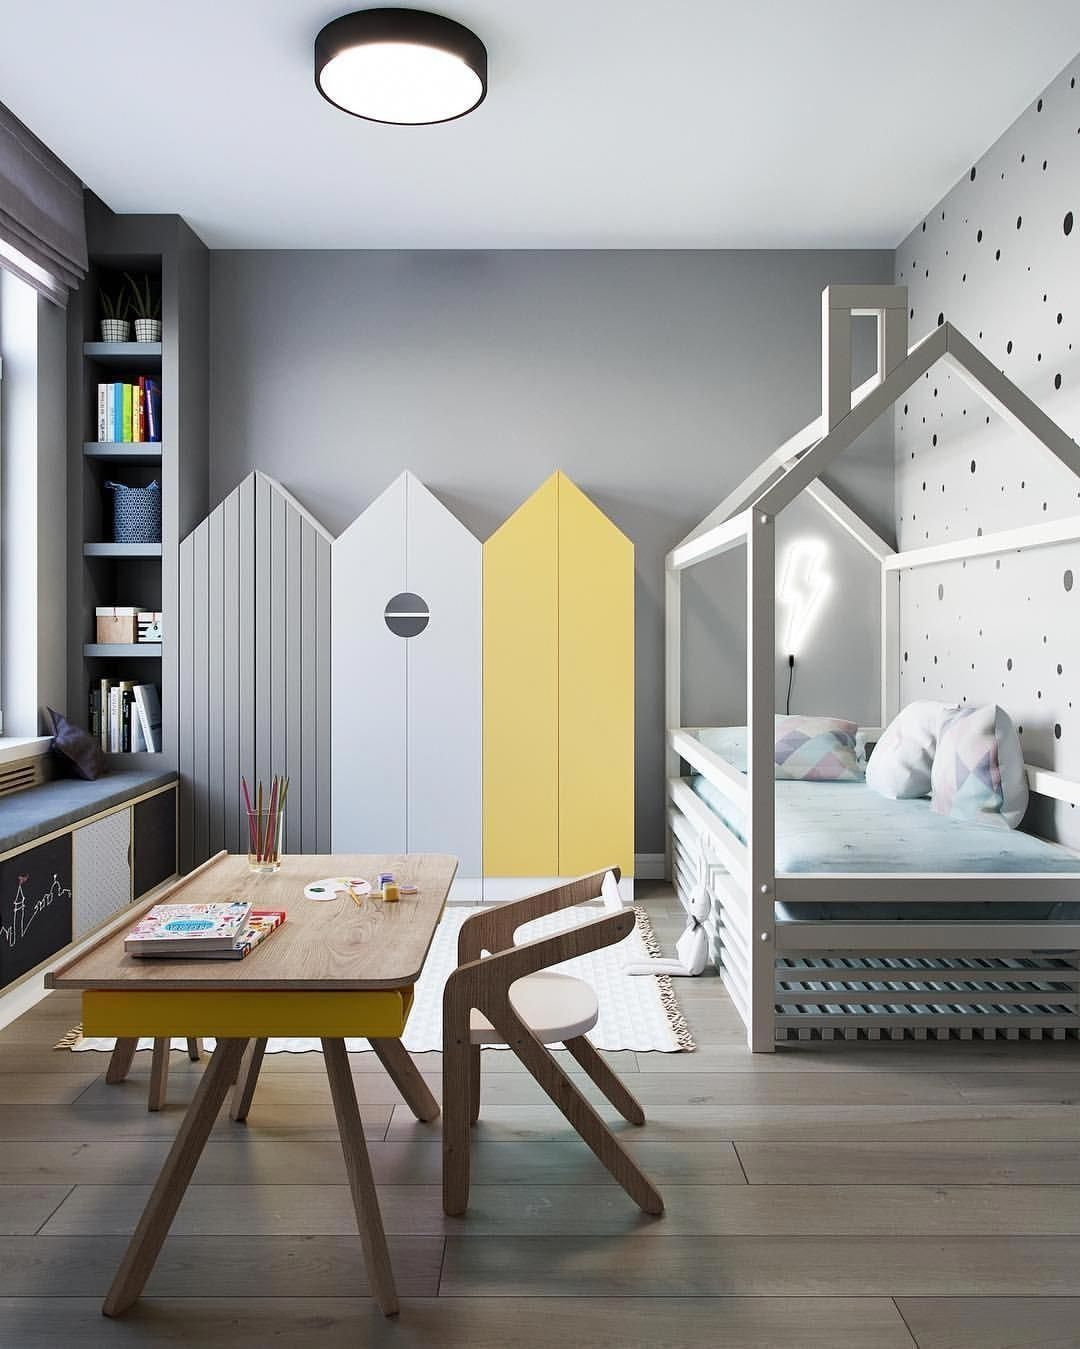 55 Crazy And Best Renovation Ideas for Your Child's Bedroom to Make It More Comfortable #childroom